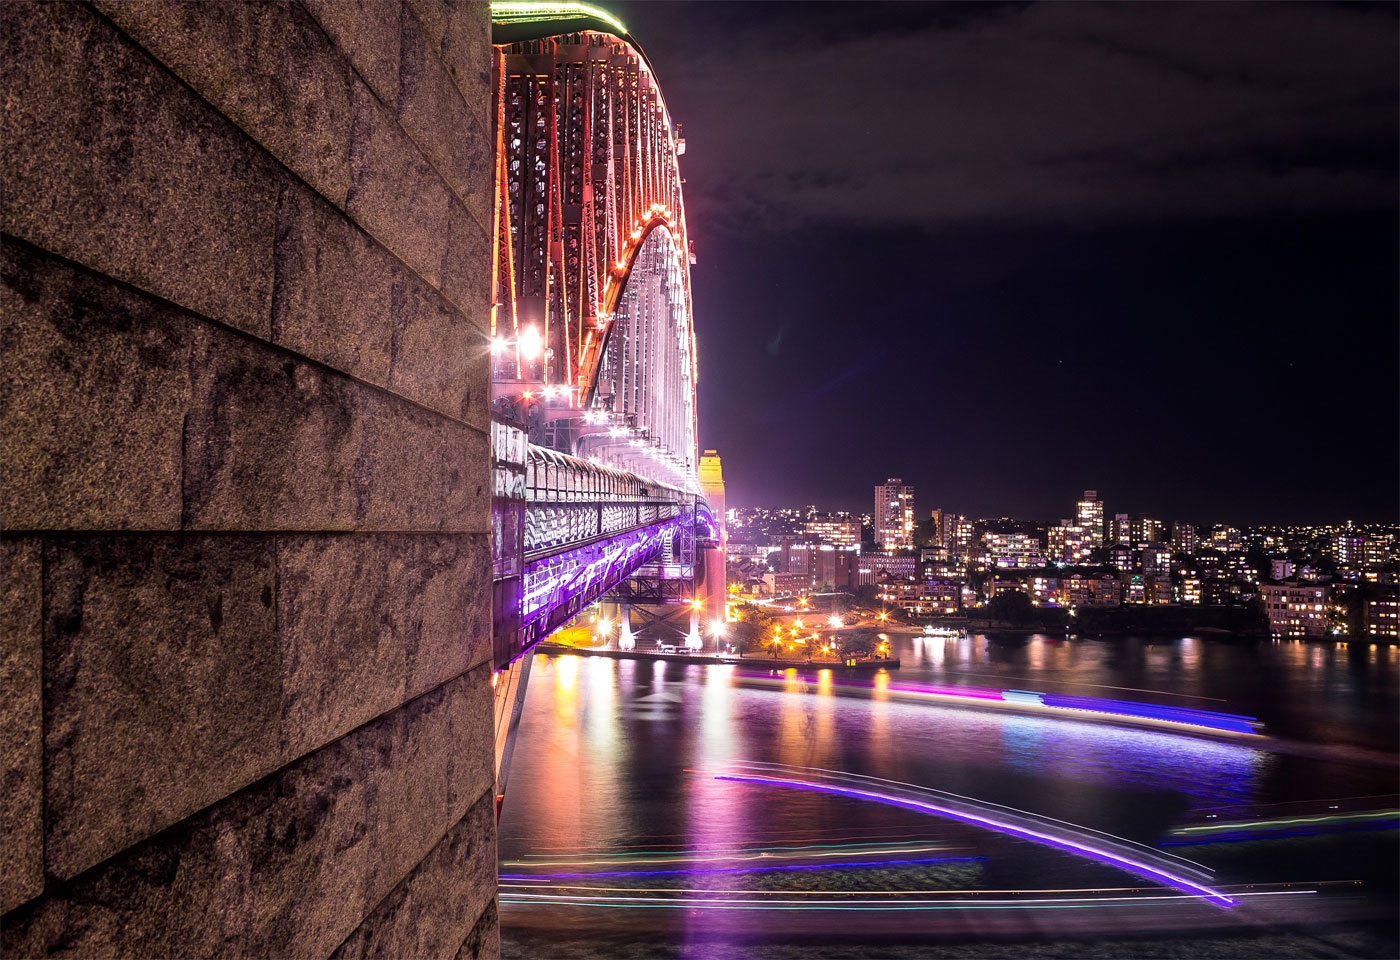 011869cad413 How to capture the magic of Vivid Sydney in photographs